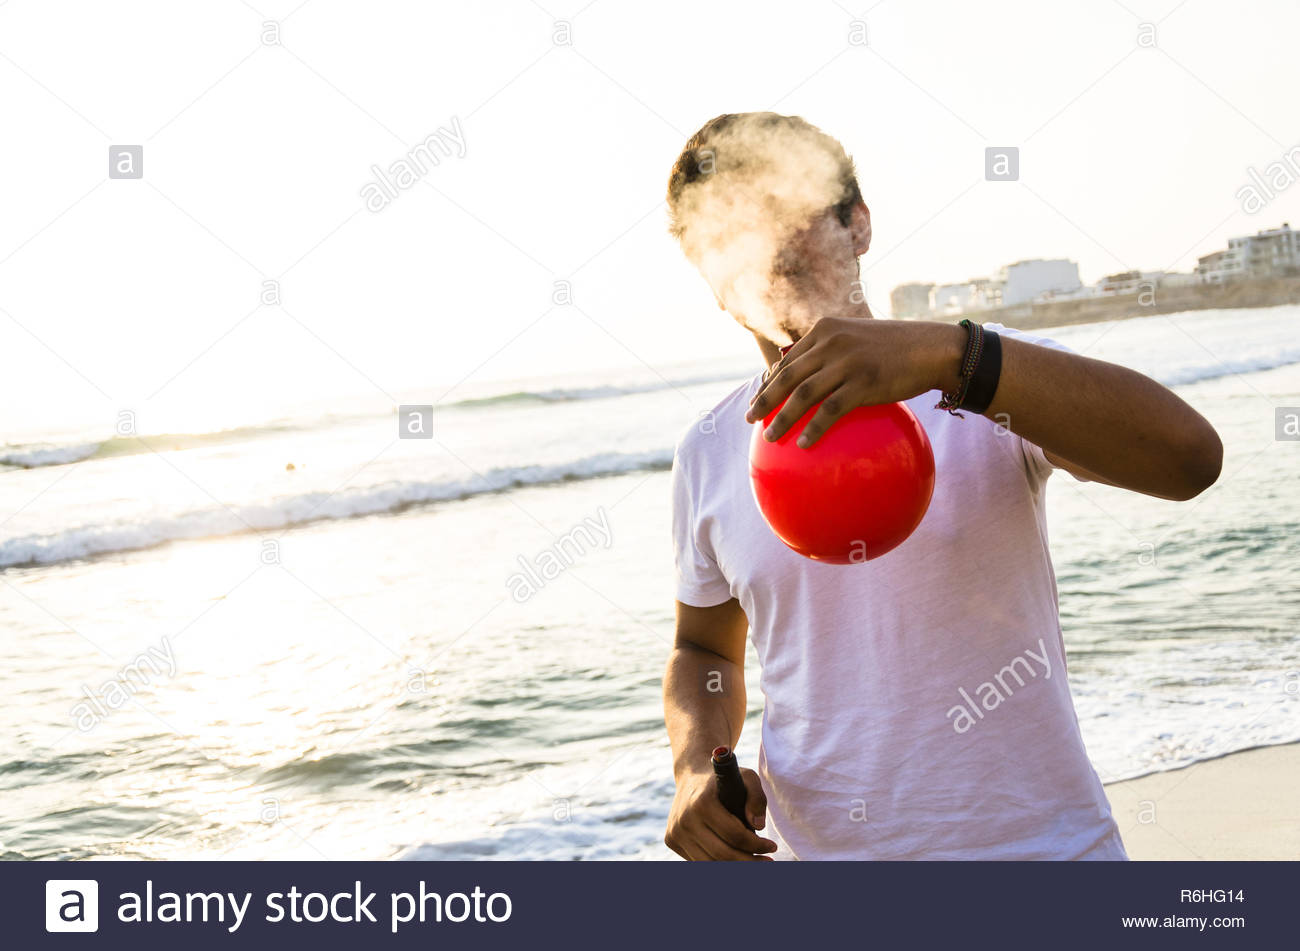 Young man with electronic cigar and a red balloon on the beach - Stock Image